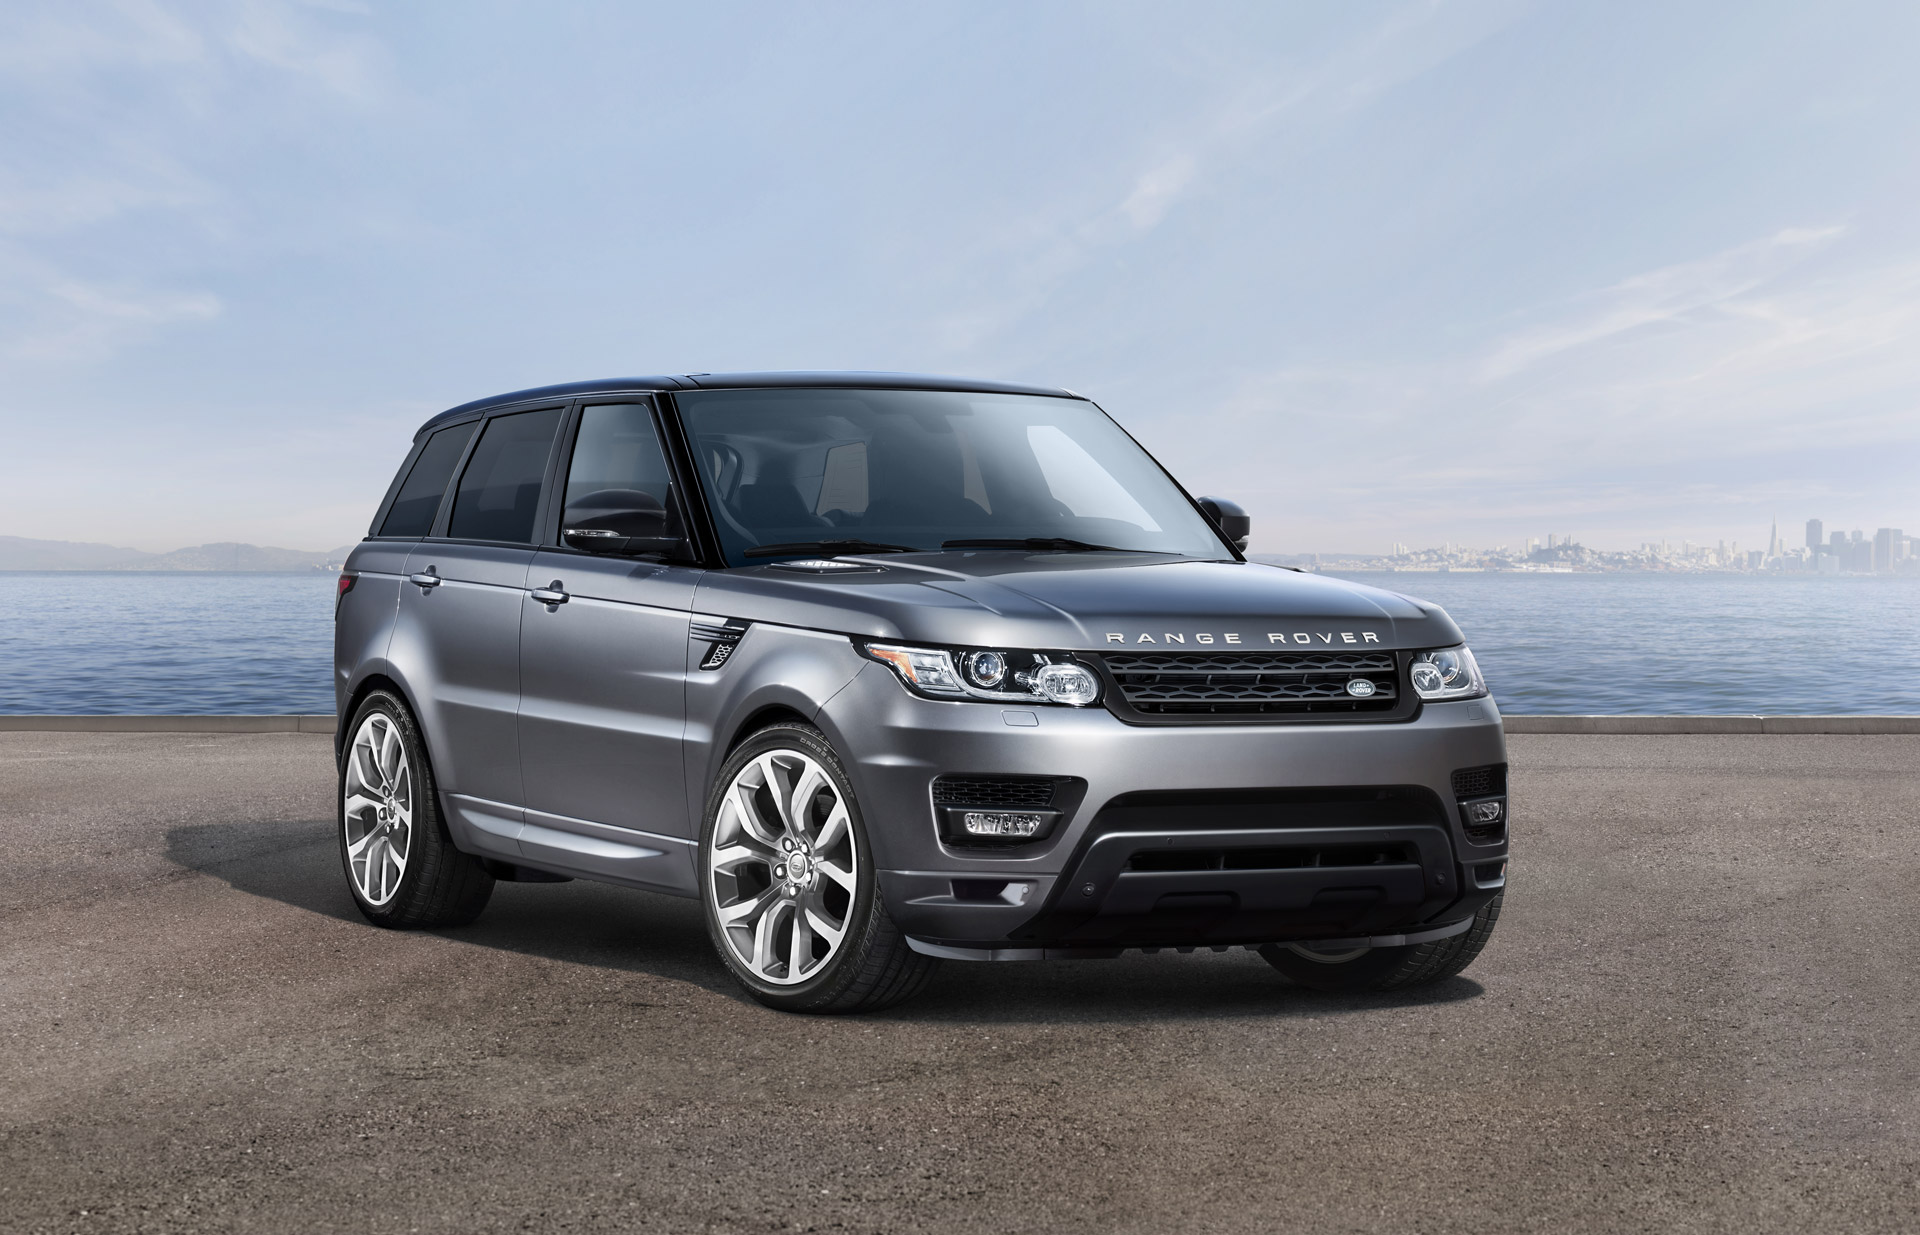 2016 land rover range rover sport review ratings specs prices and photos the car connection. Black Bedroom Furniture Sets. Home Design Ideas